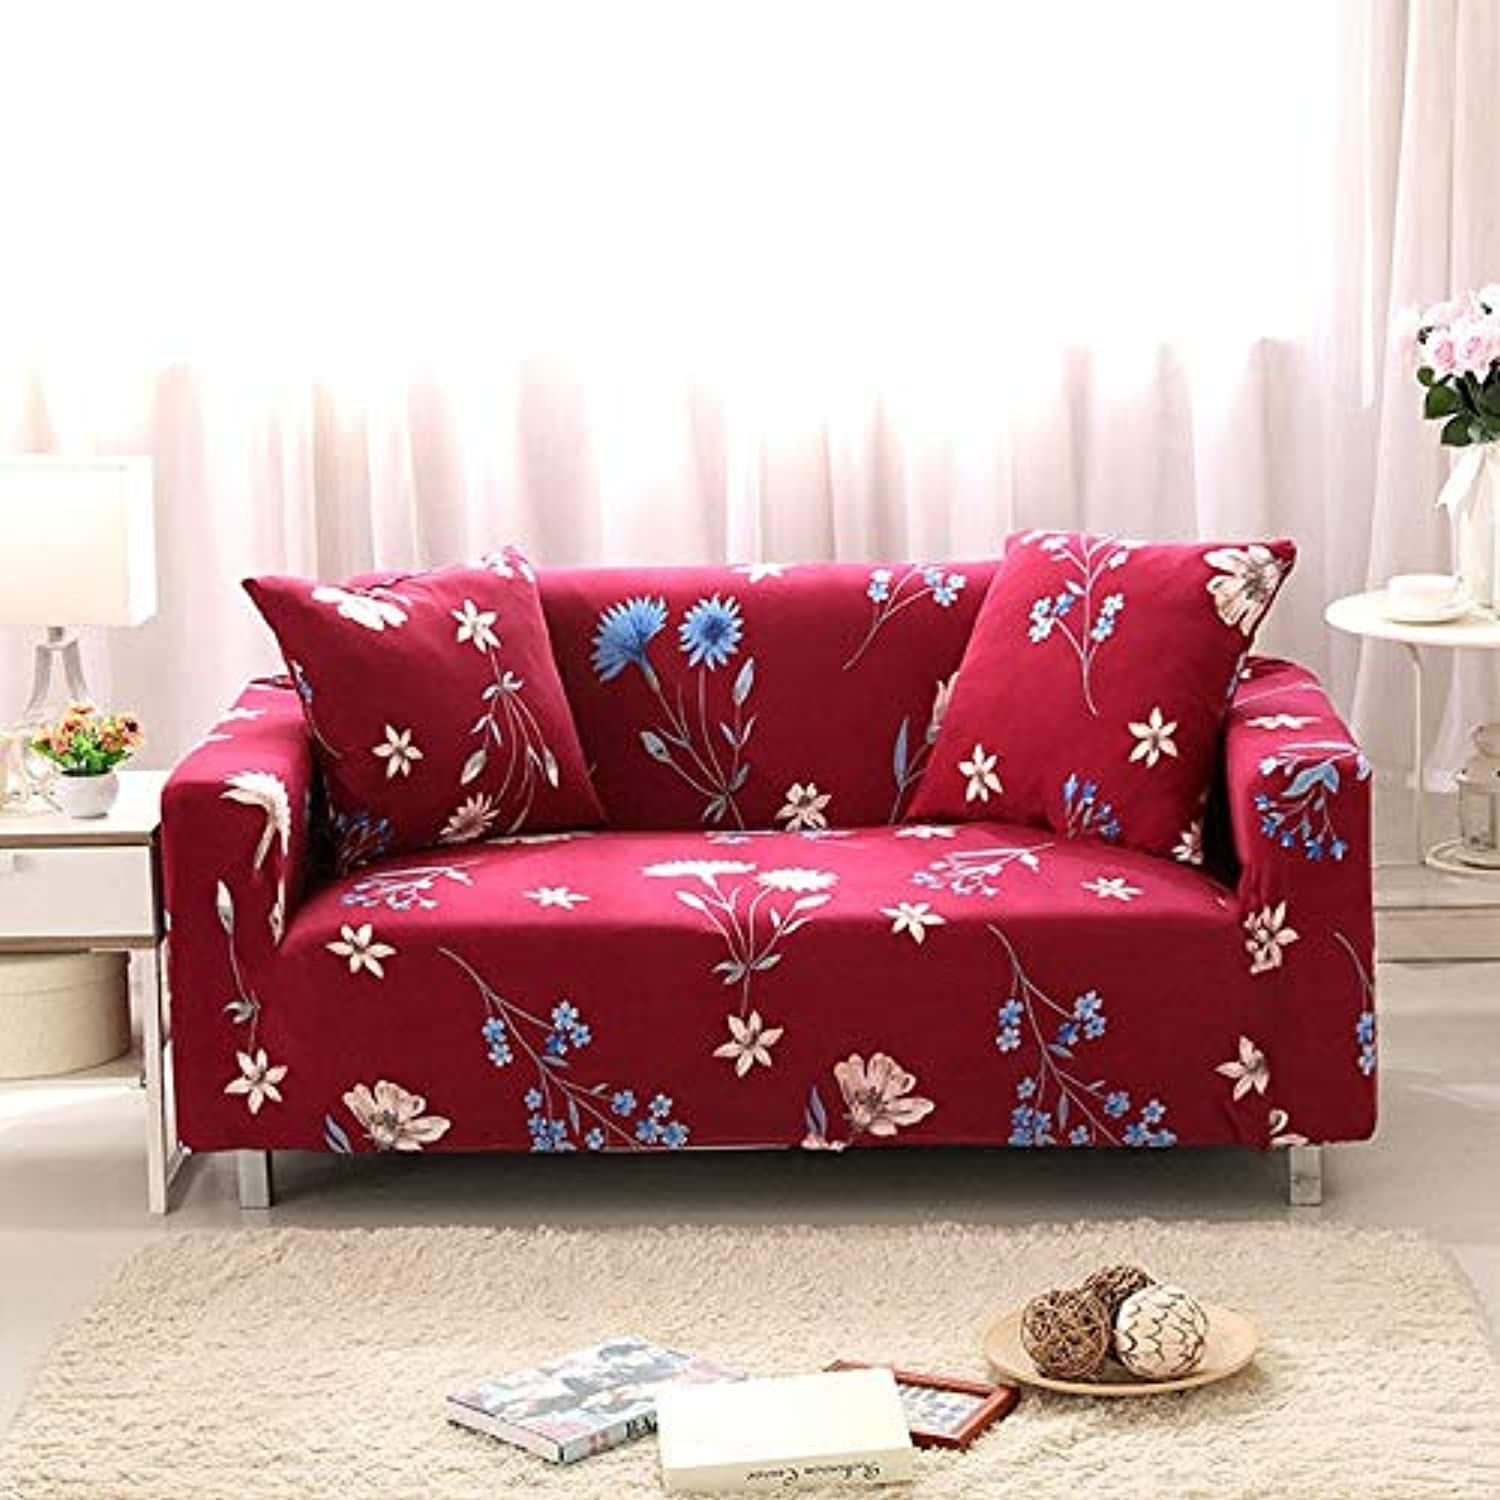 Floral Printing Stretch Elastic Sofa Cover Cotton Sofa Towel Slip-Resistant Sofa Covers for Living Room   colour2, 2-Seater 145-185cm